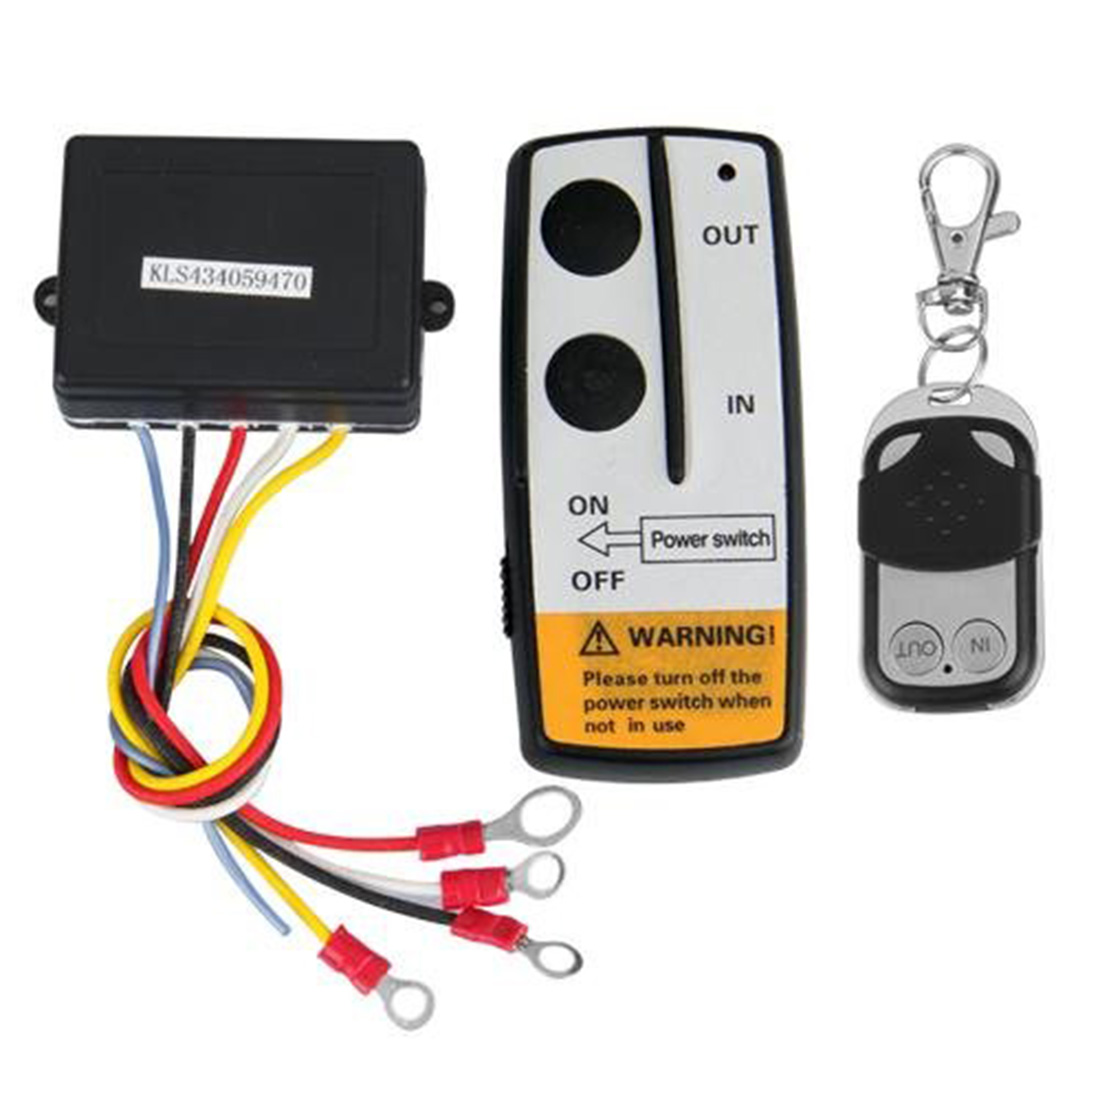 small resolution of universal wireless winch remote control kit 12v 50ft 2 remotes with indicator light car detector for truck jeep atv suv